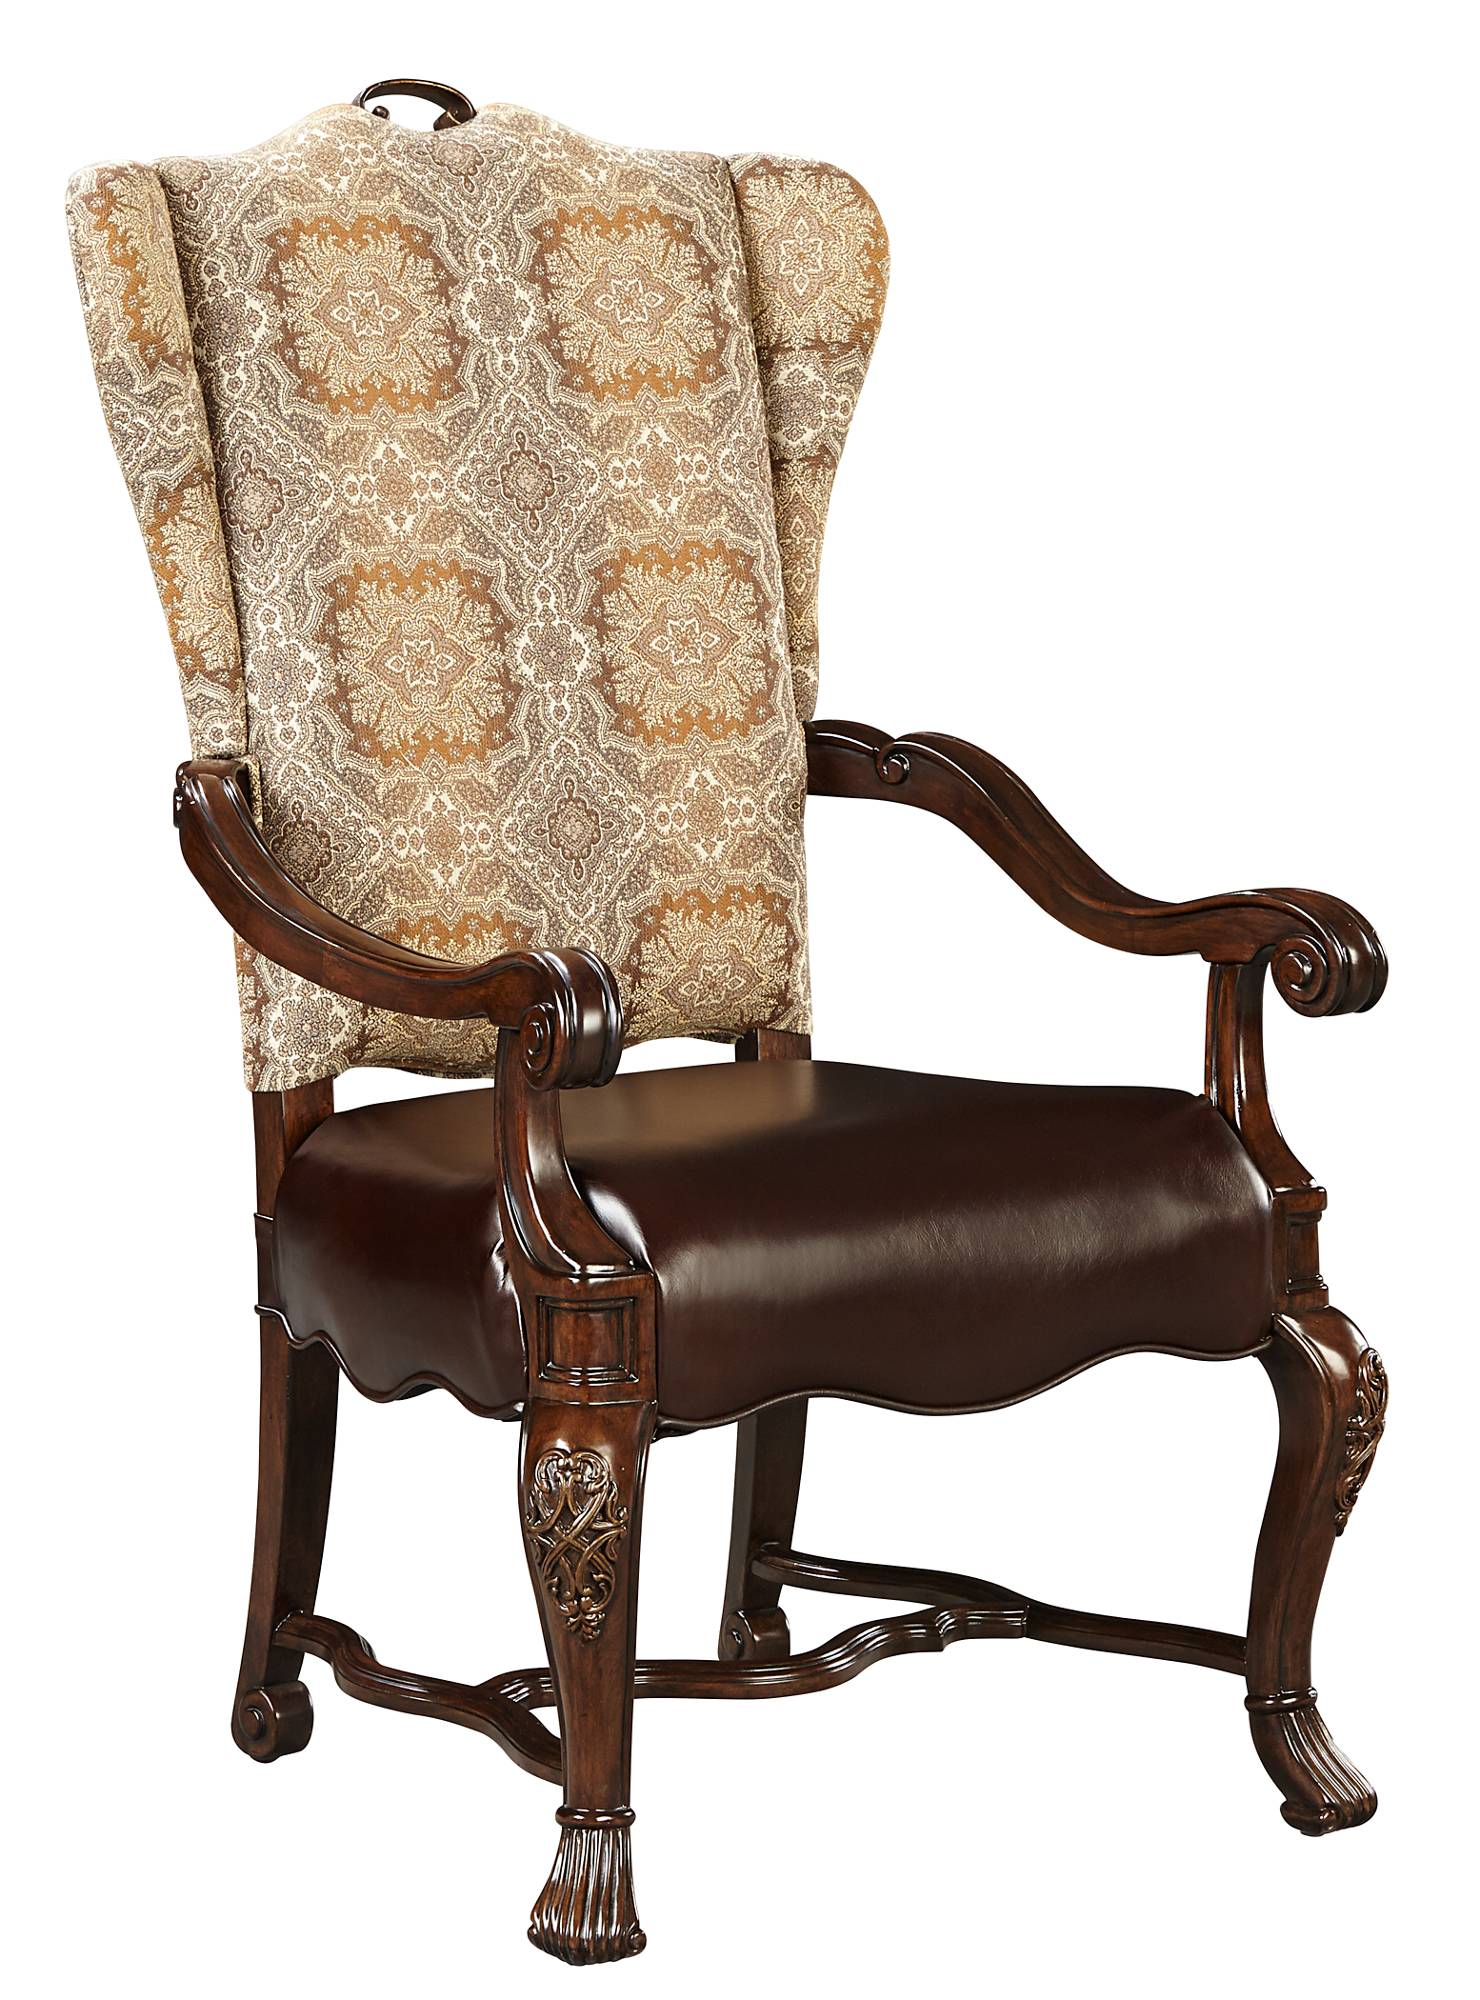 Stanley Furniture Casa D'Onore Upholstered Arm Chair - Item Number: 443-11-75